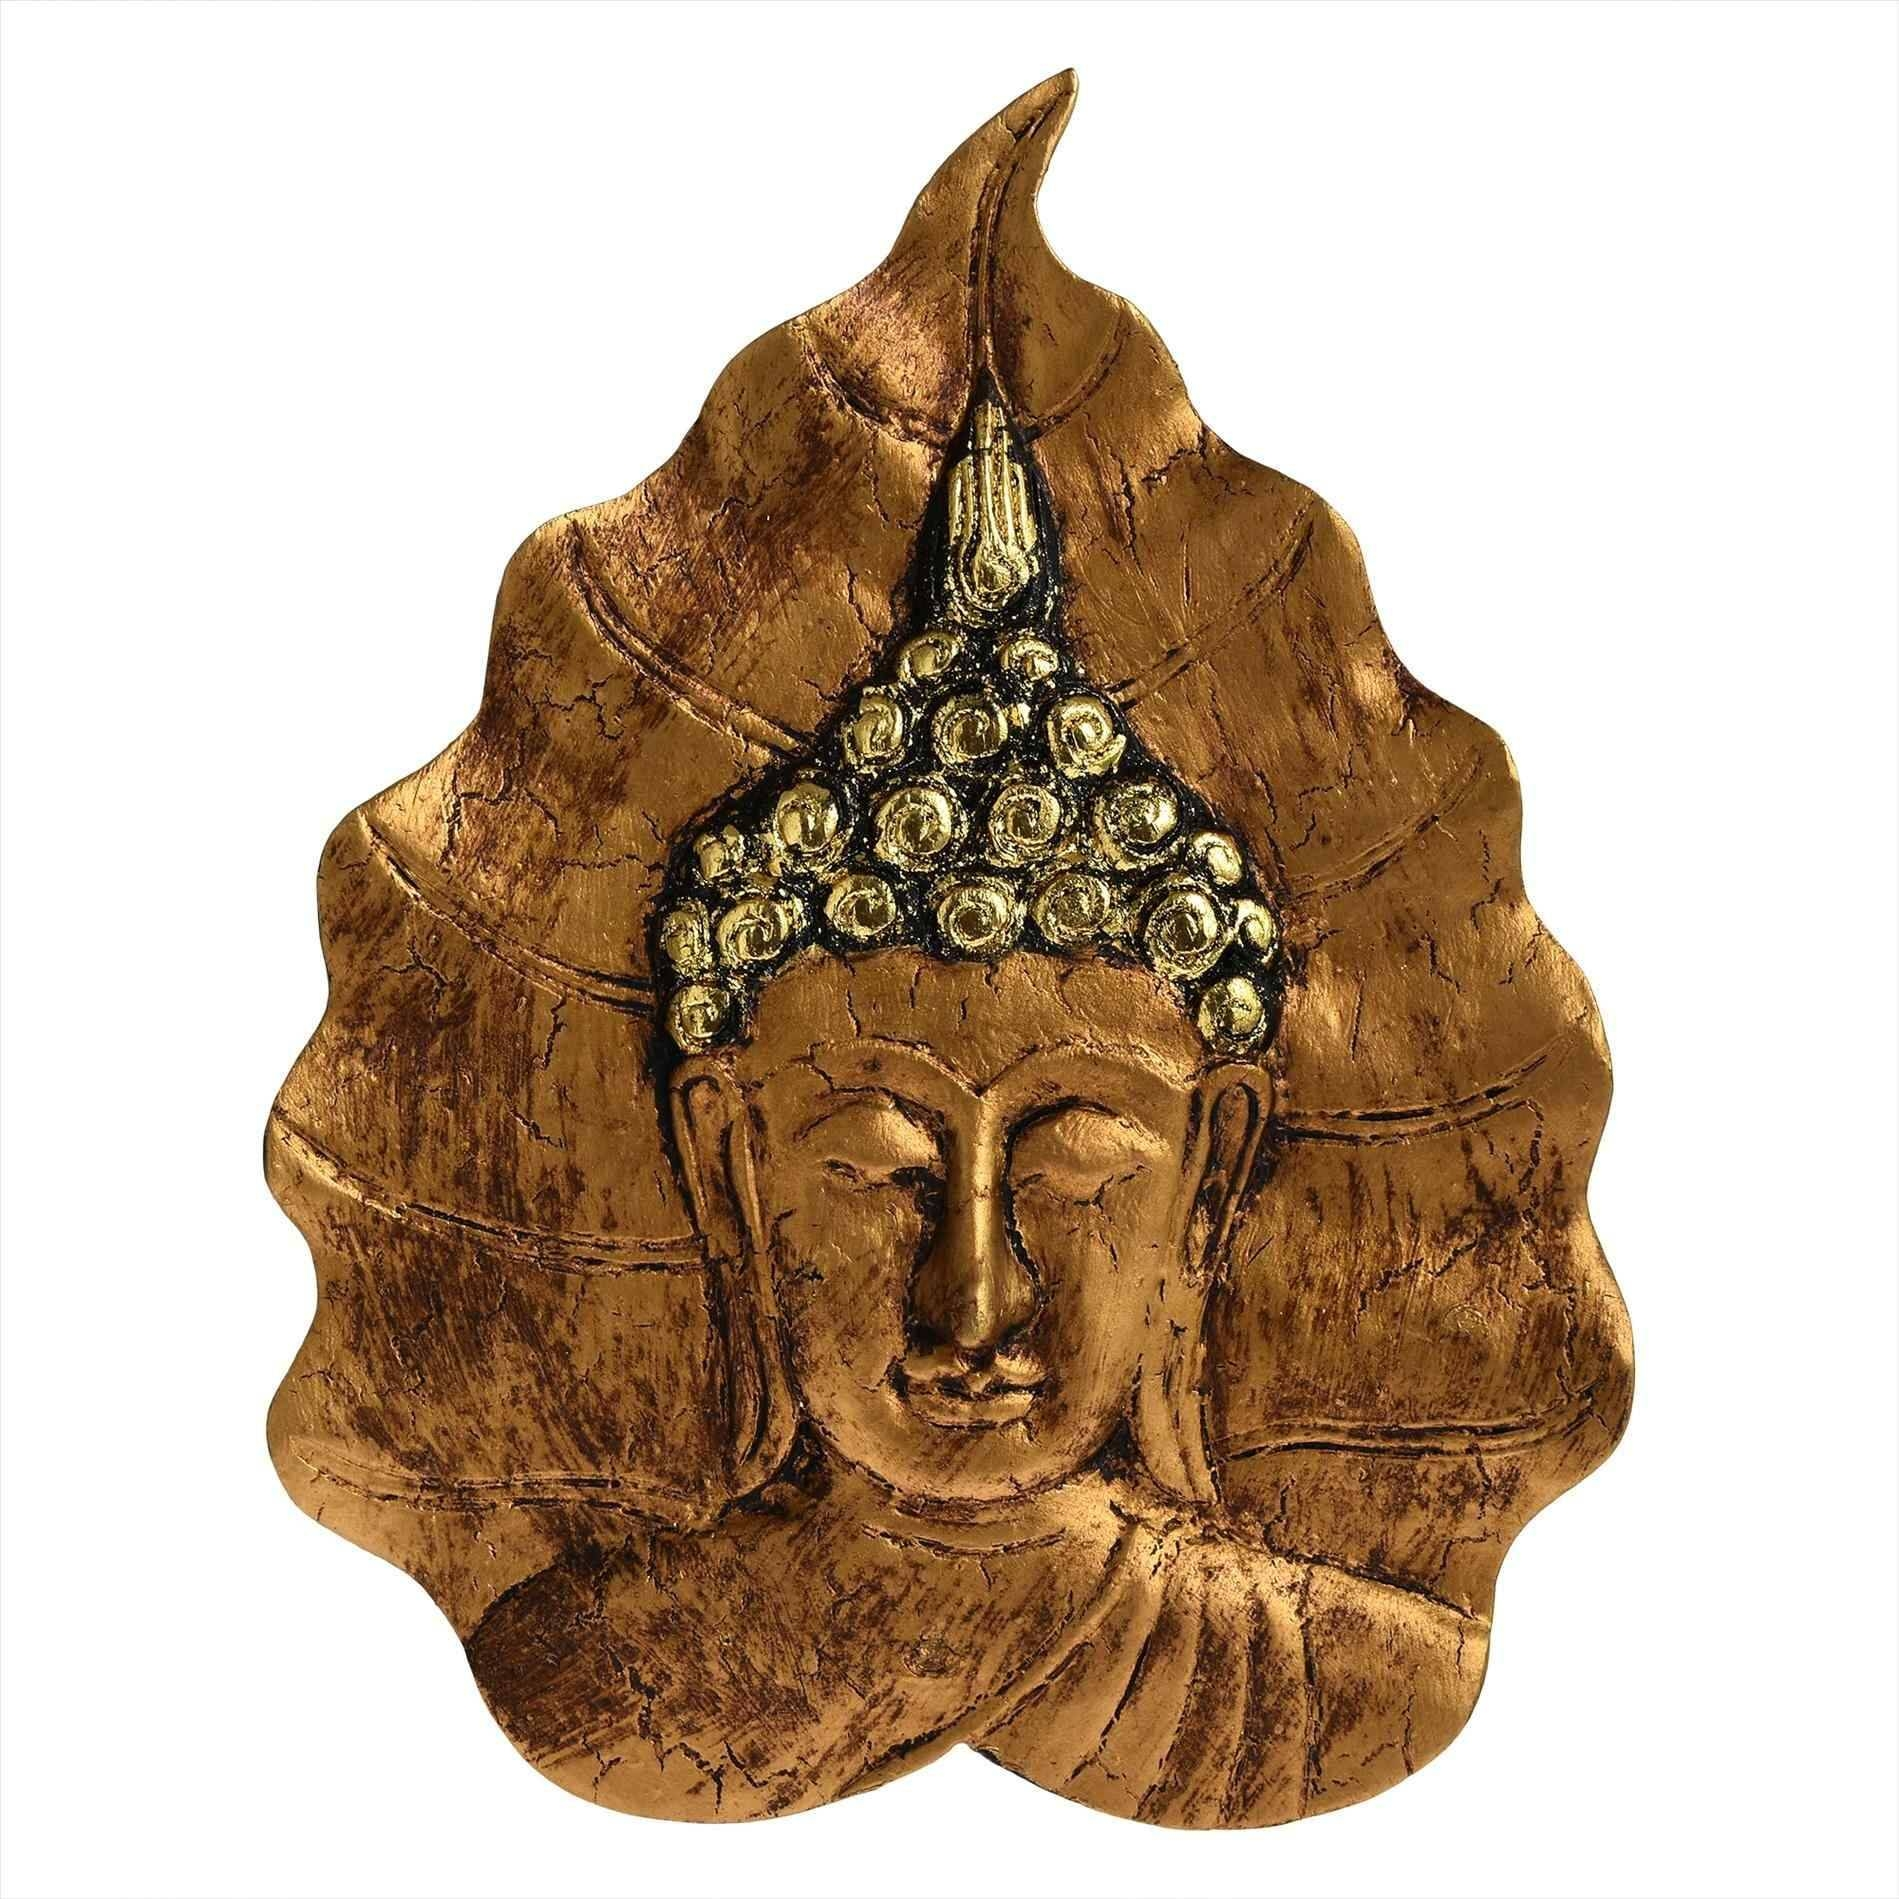 Natural Shine Buddha Wooden Mask Wall Art Decor Design Bed Bath Throughout 2017 Buddha Wood Wall Art (View 9 of 20)